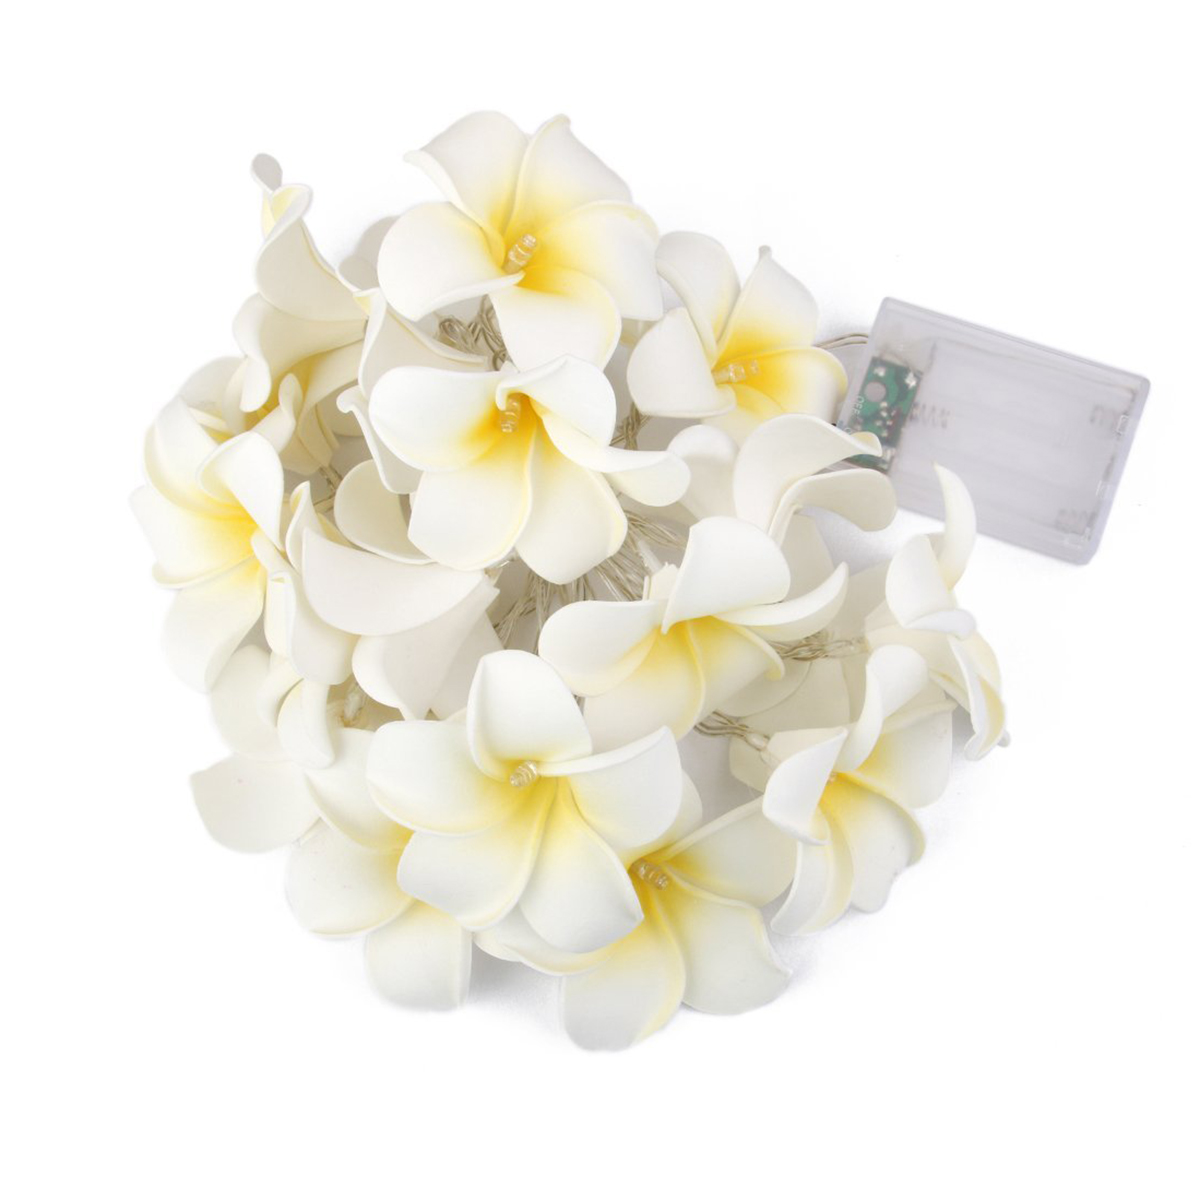 Click here to buy 20pcs Egg Flower Lamp Battery Powered White Plumeria Flower String Lamp String (Warm....